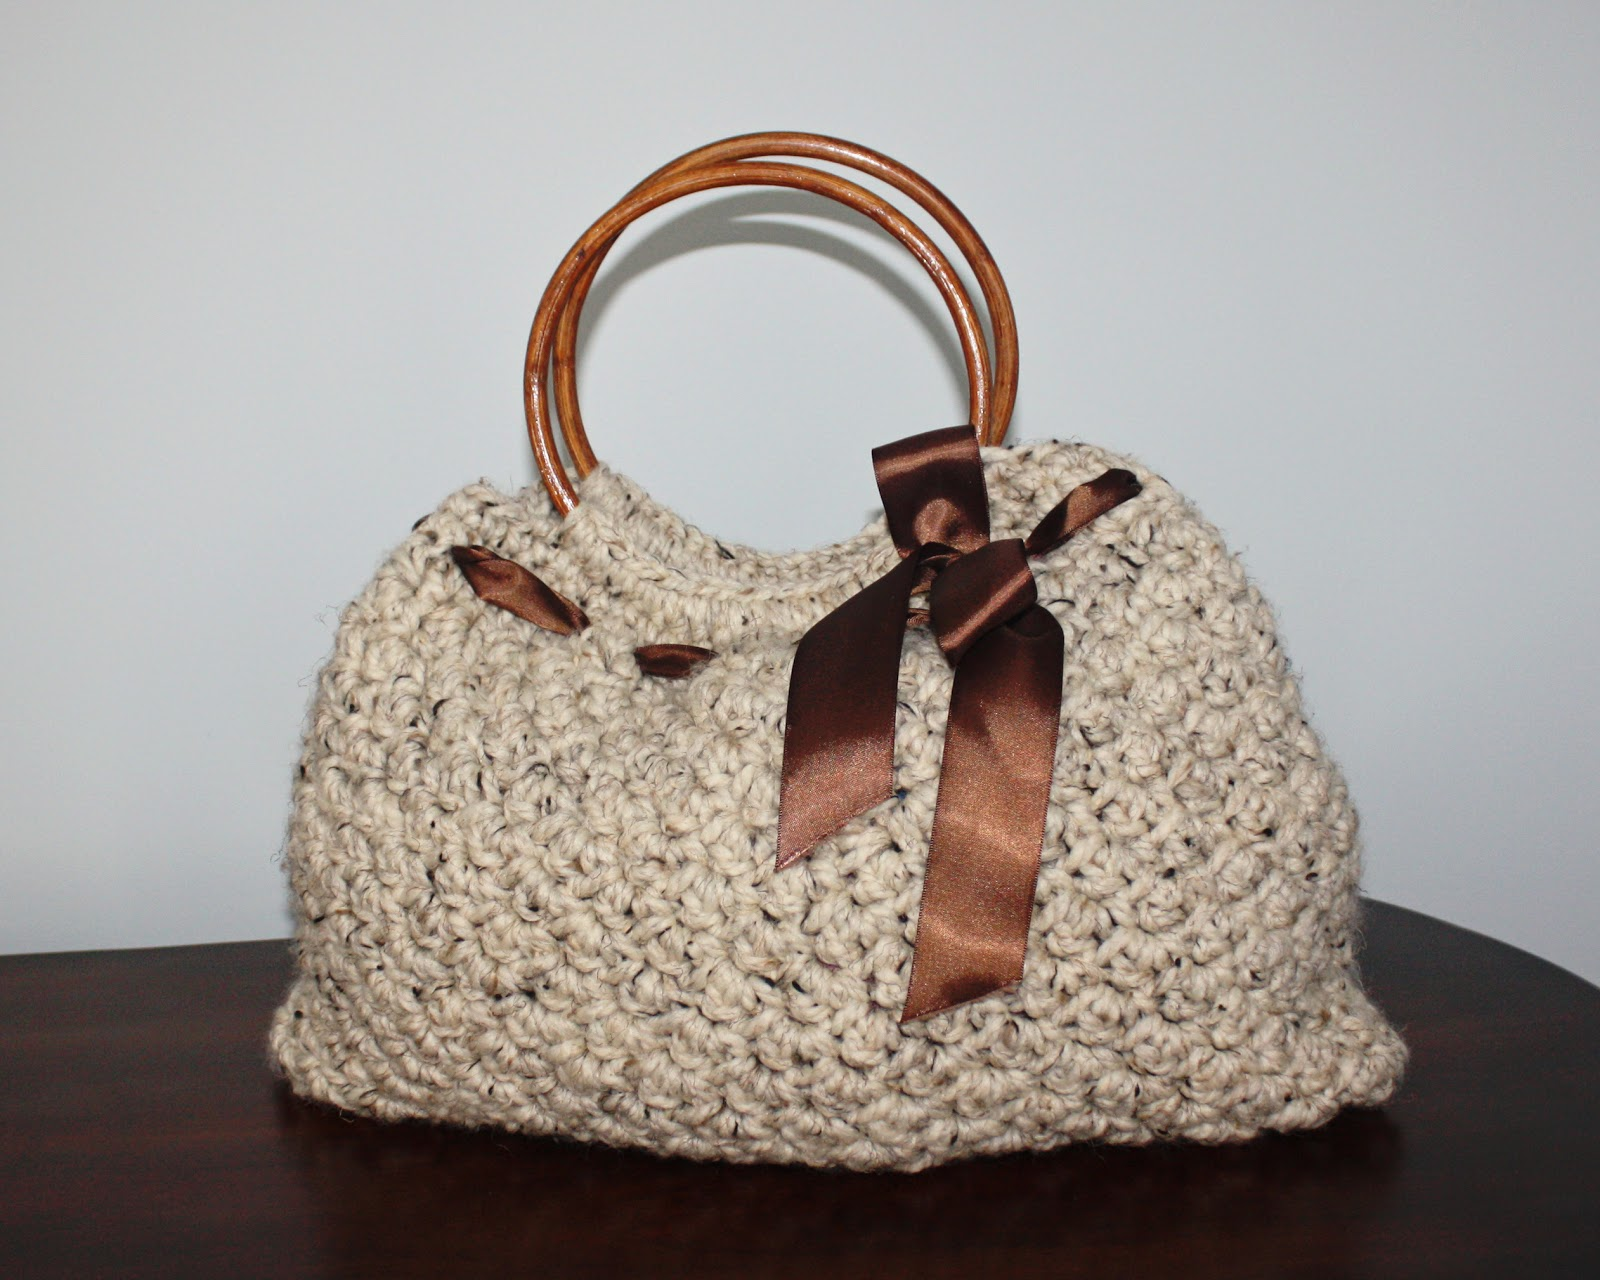 Anyway now I am offering this free crochet handbag pattern to you. I ...